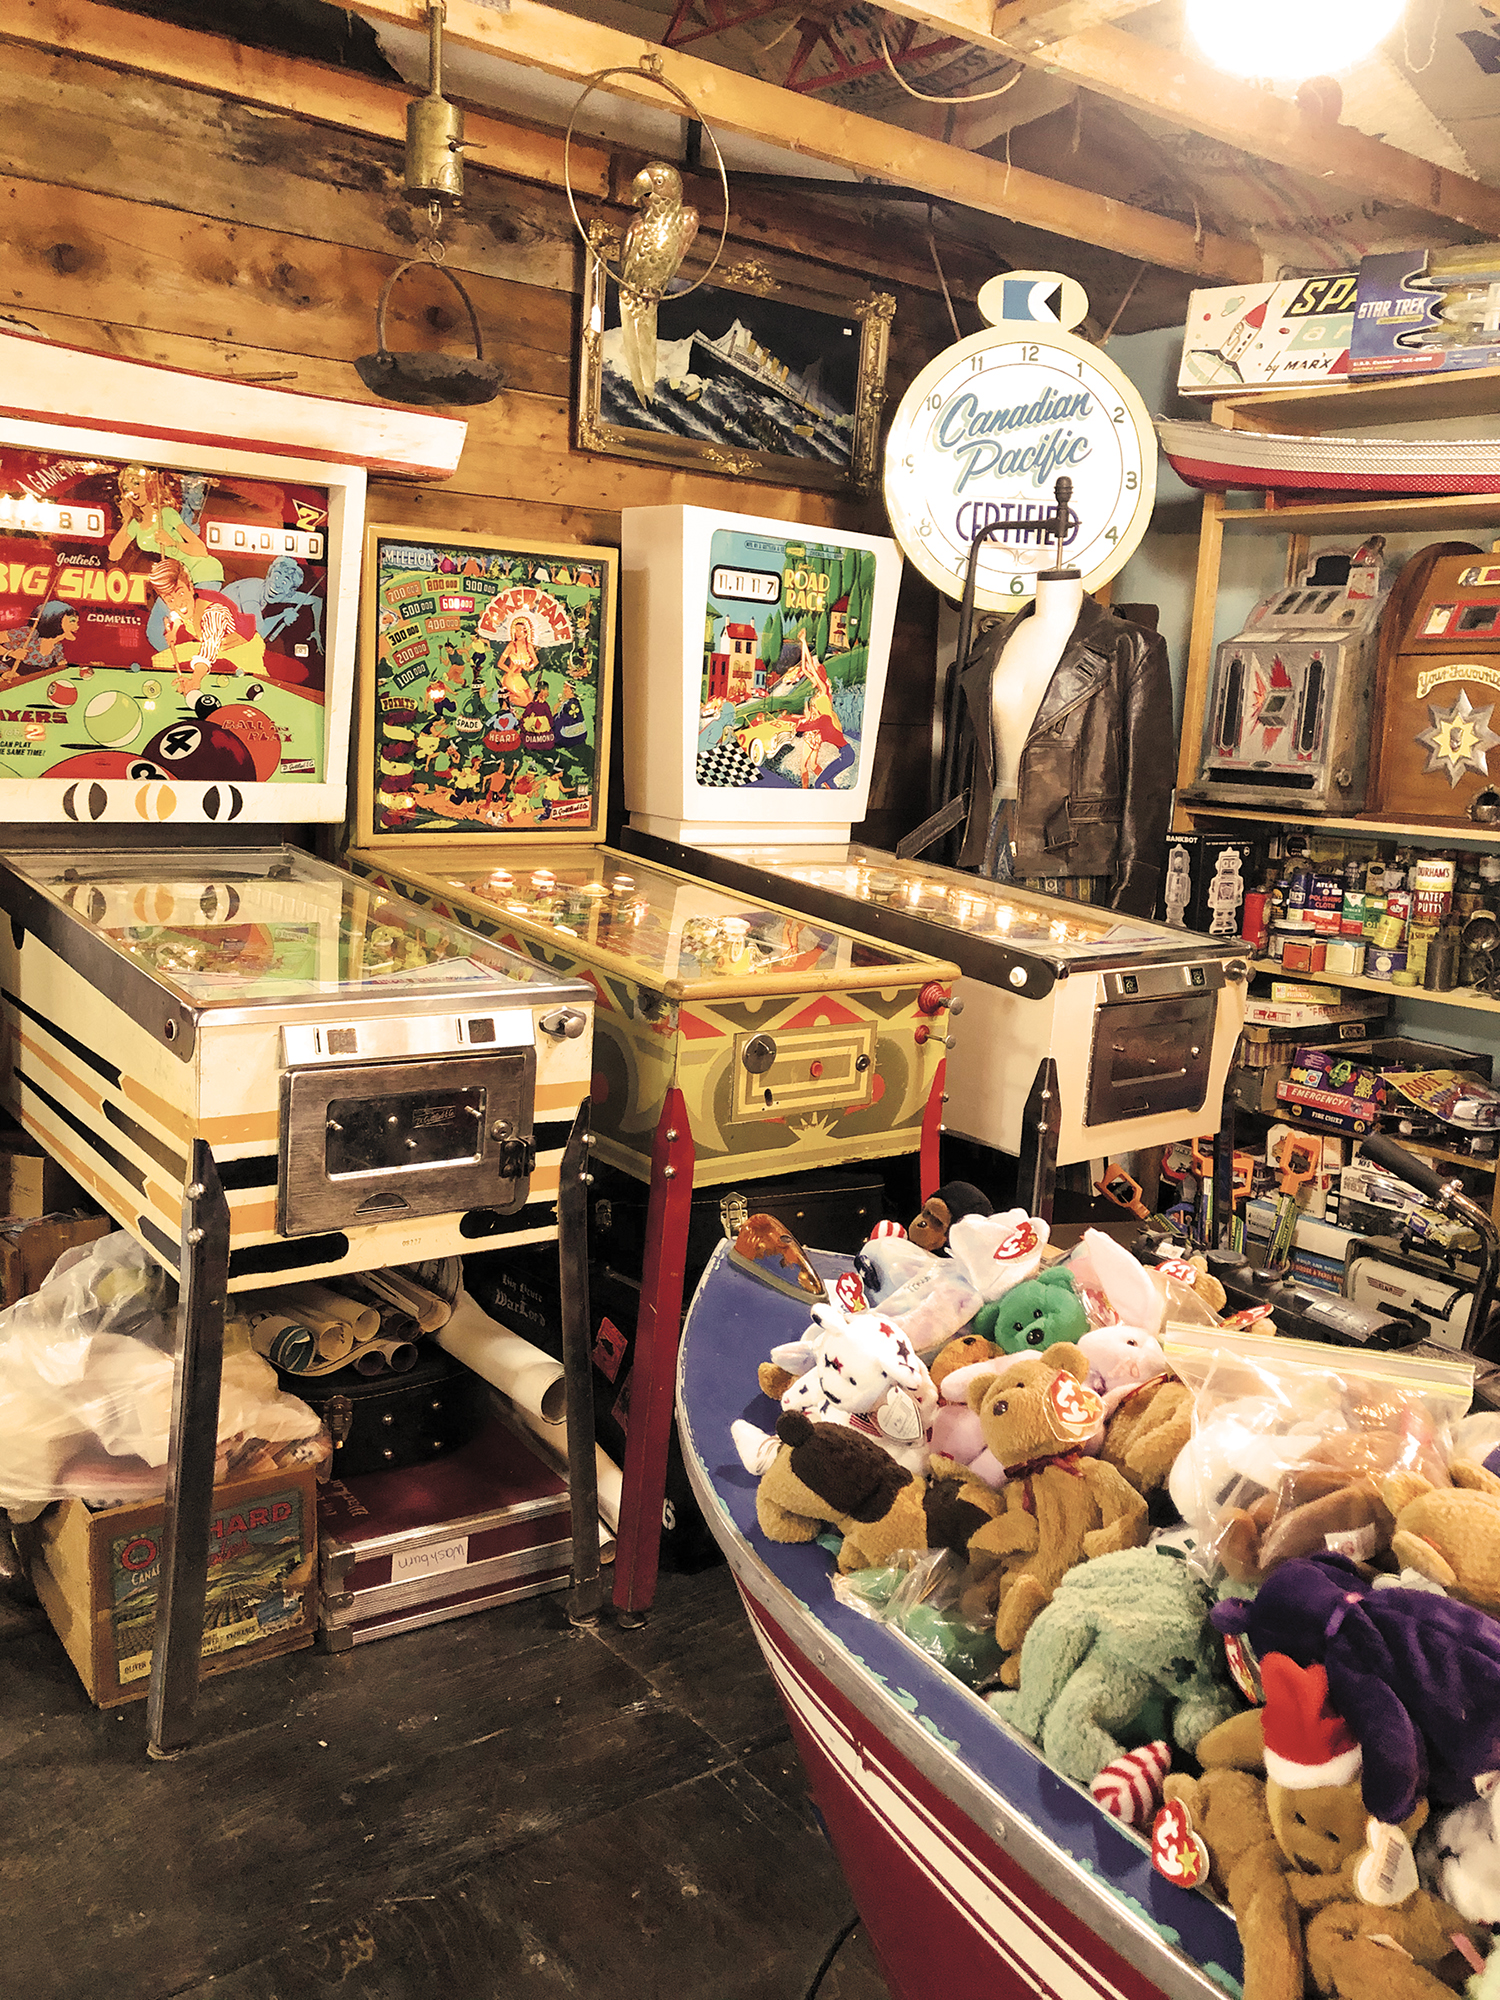 Antique pinball machines, stuffed beanie babies, Canadian Pacific clock, leather jacket.